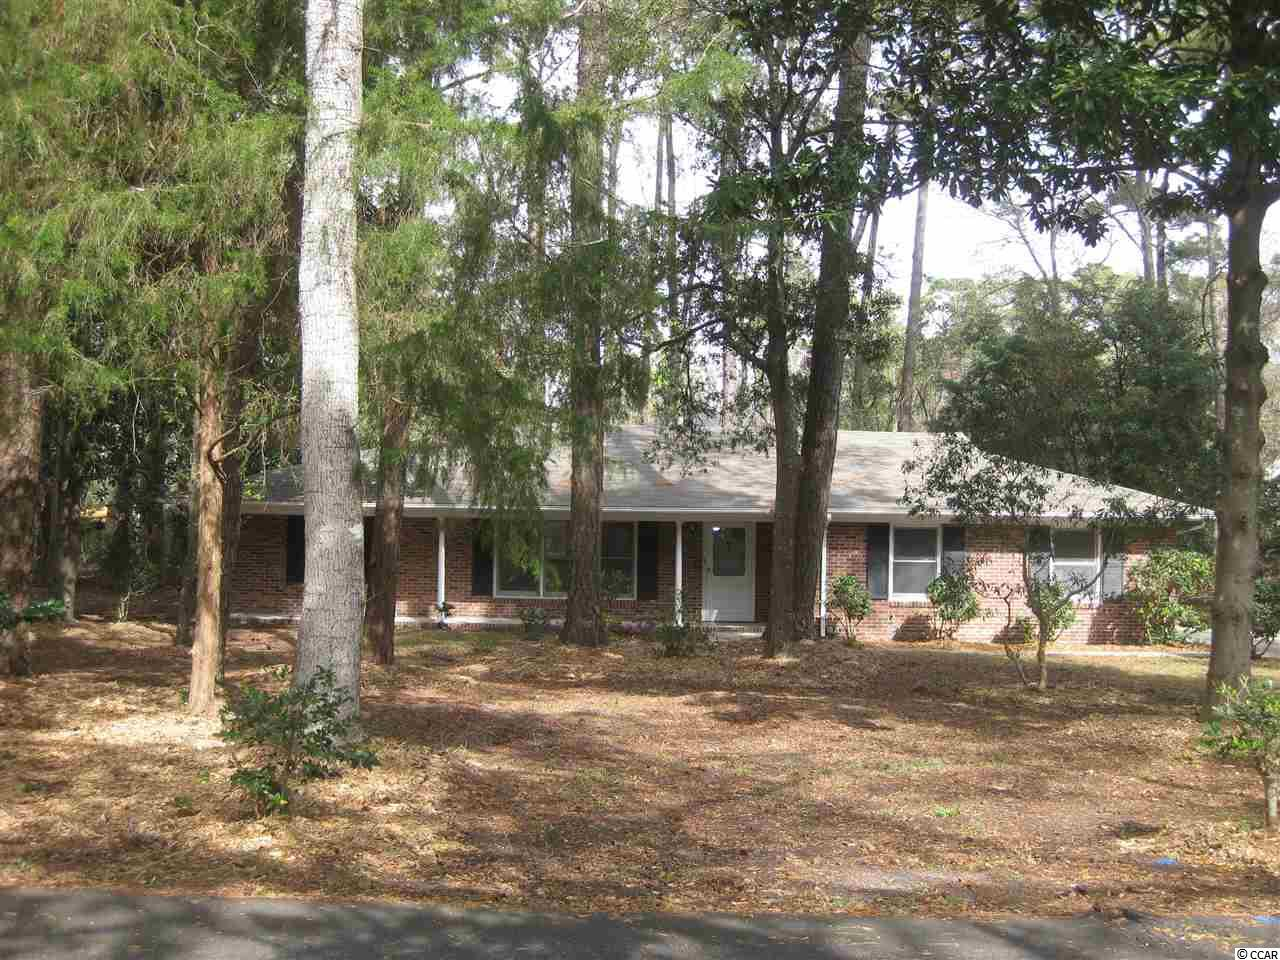 Location! Location! Location!All brick home in exclusive Oceanfront Briarcliffe Acres is nested in beautiful wooded land! This two bedrooms, two baths with extra indoor shower room comes with a cozy living room with wood fireplace, a family room with built-in wood shelving, a specious kitchen with ample cabinetry and a breakfast area. There is also a two car attached garage, Carolina room and a Sunroom. The flooring is new throughout the house and is on 0.8 of an Acre which you can build a swimming pool or tennis court as you wish. Neighborhood offers over one mile of private Beach and an Oceanfront Cabana! There is a short drive to shopping, restaurants and entertainment! With a little TLC make this home a dream come true!